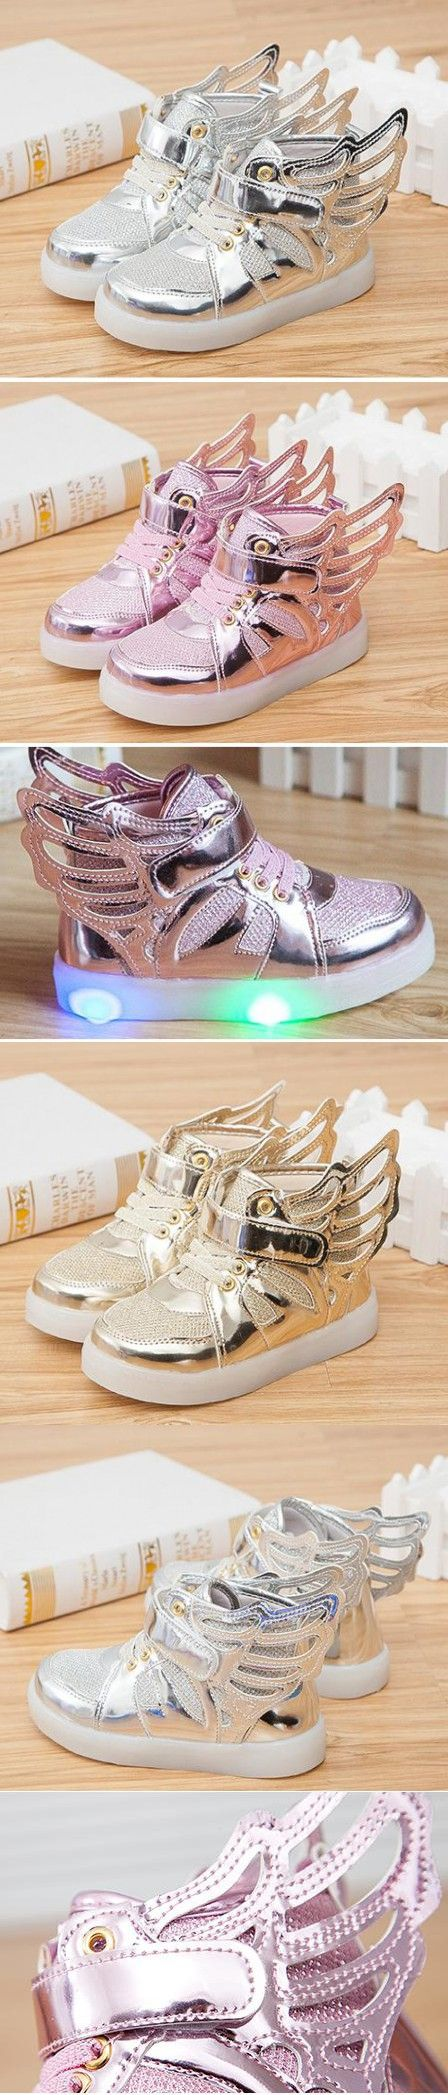 New spring 2016 Children Led Lights Shoes Boys/Girls Light Kids Shoes Chaussure Enfant Luminous With Wings Sneaker Casual